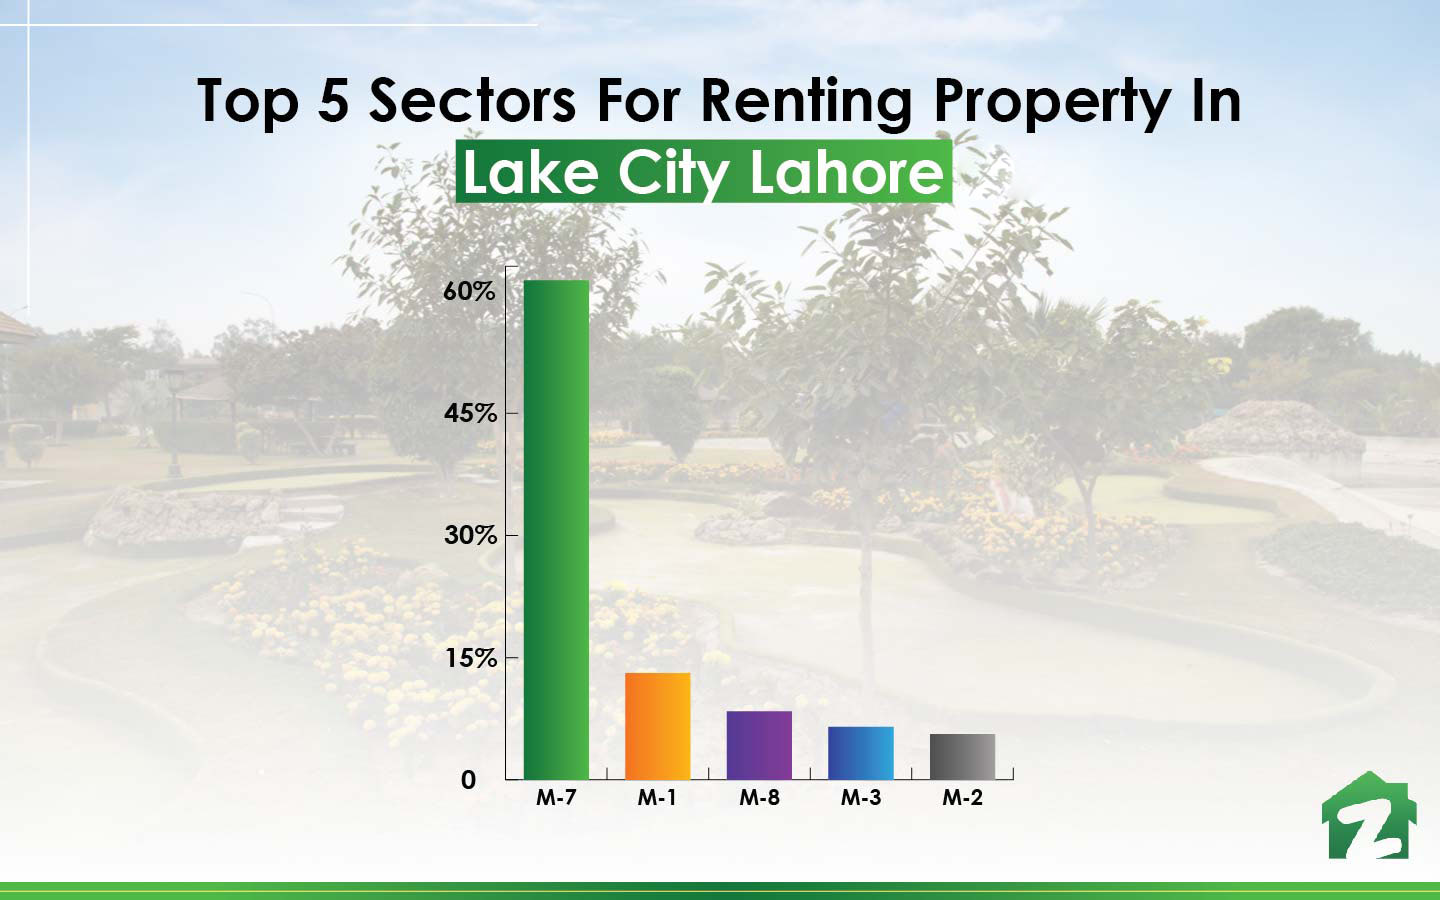 popular sectors to buy property in Lake City Lahore